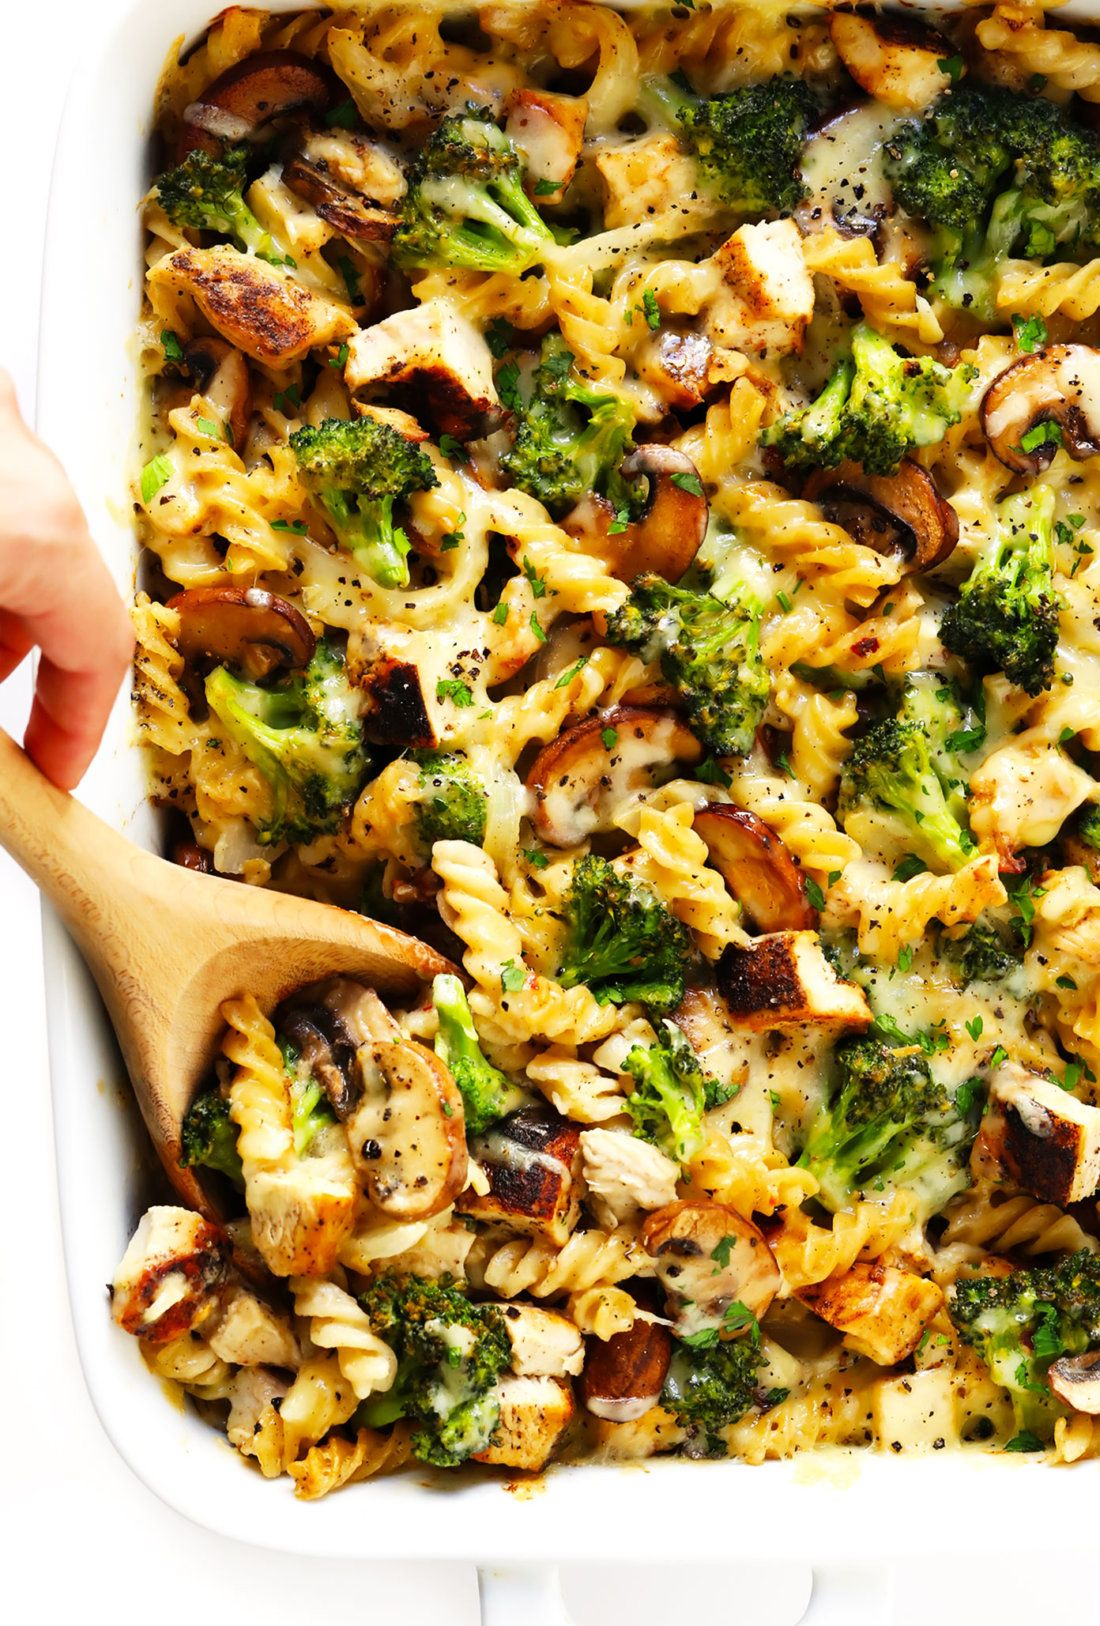 Healthier Broccoli Chicken Casserole Recipe Gimme Some Oven Recipe Chicken Recipes Casserole Healthy Dinner Healthy Recipes